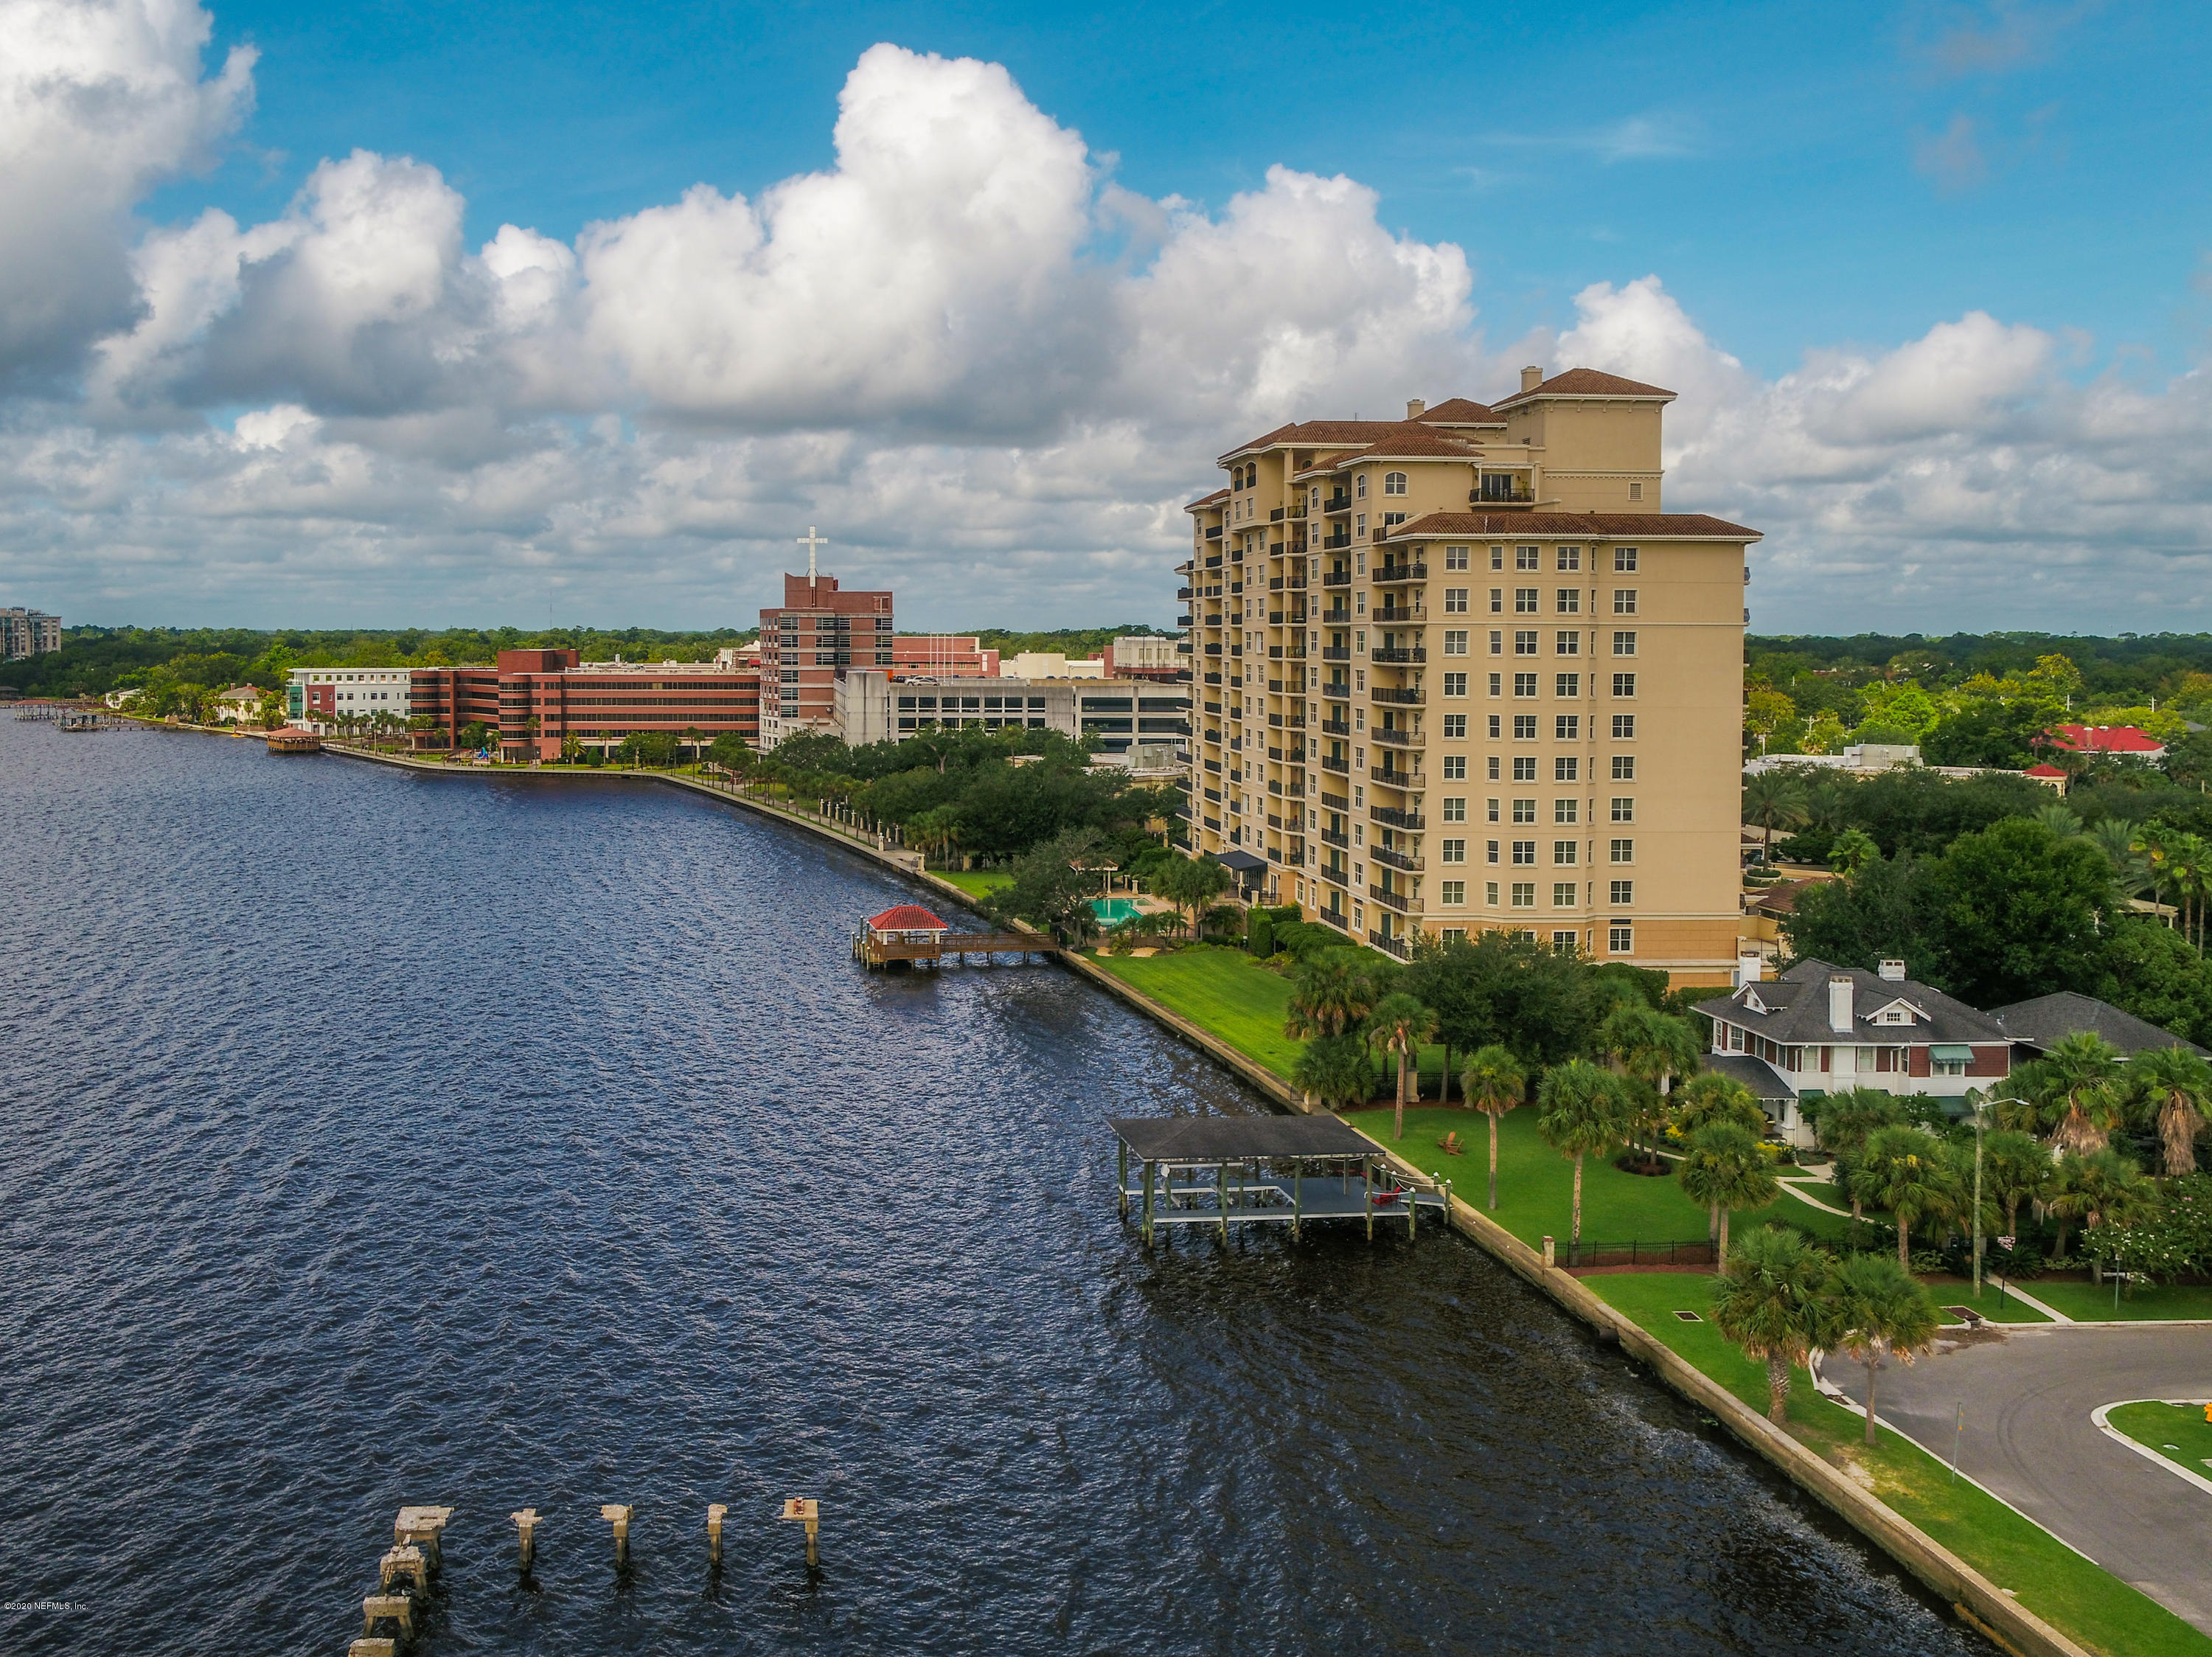 Image 81 of 92 For 2311 River Blvd